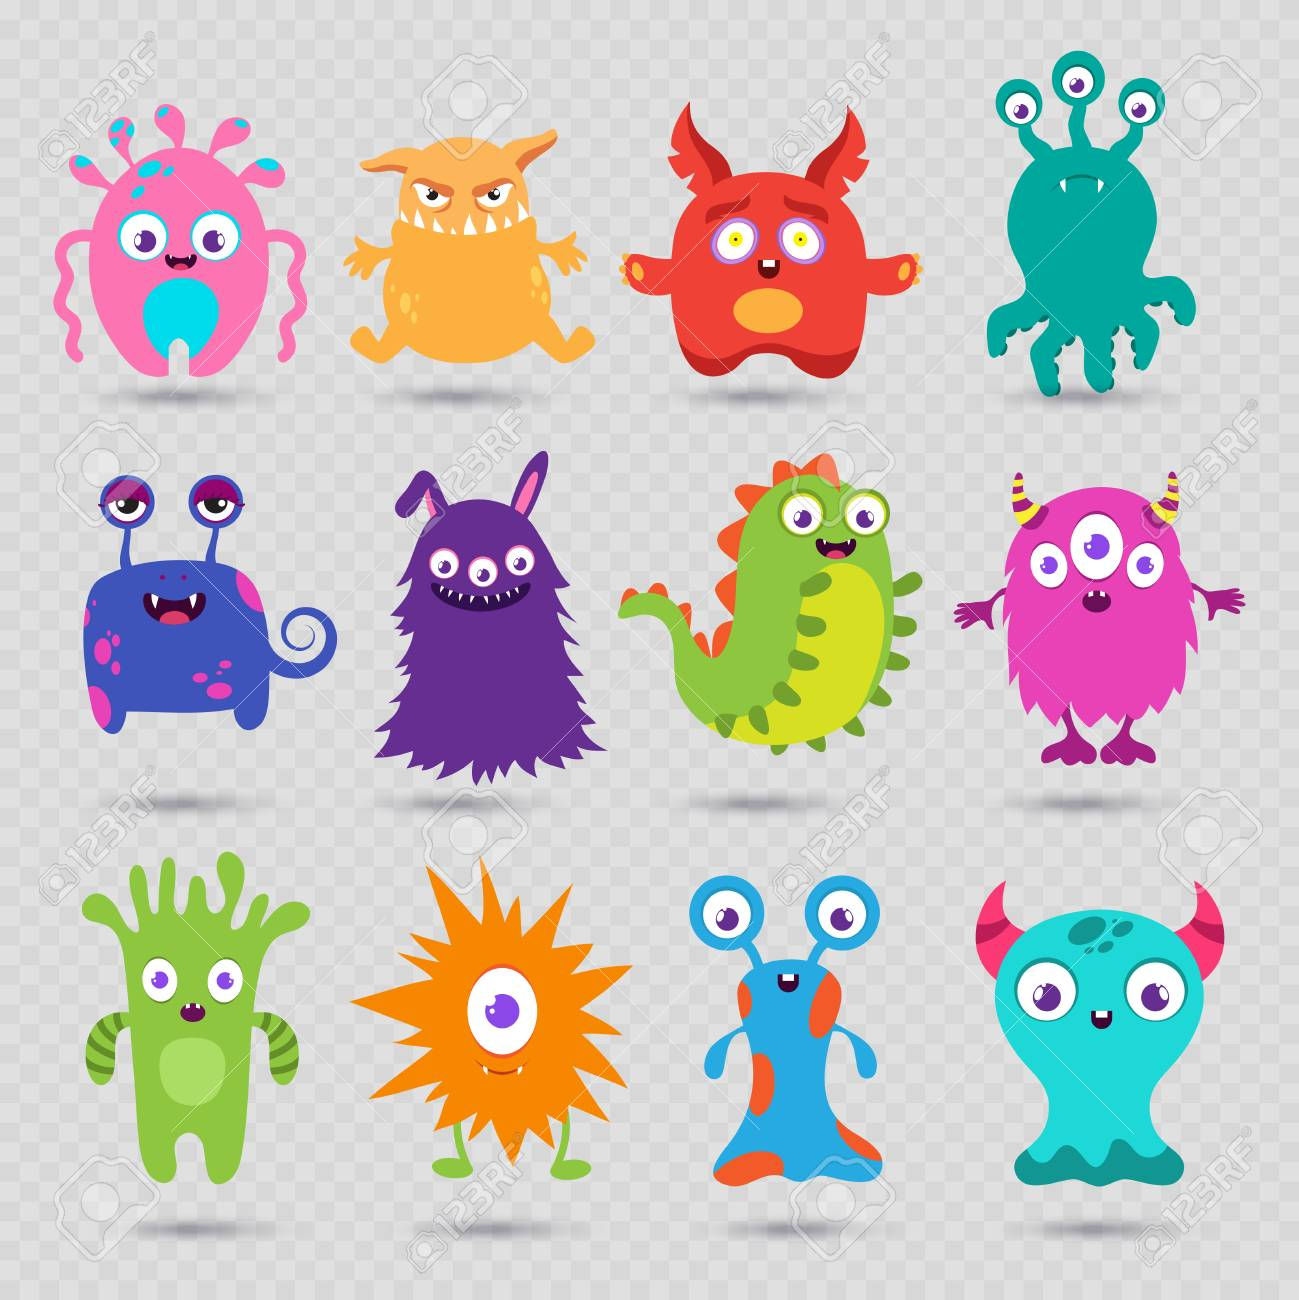 Cute Cartoon Baby Monsters Vector Isolated On Transparent Background Stock Photo Picture And Royalty Free Image Image 109441200